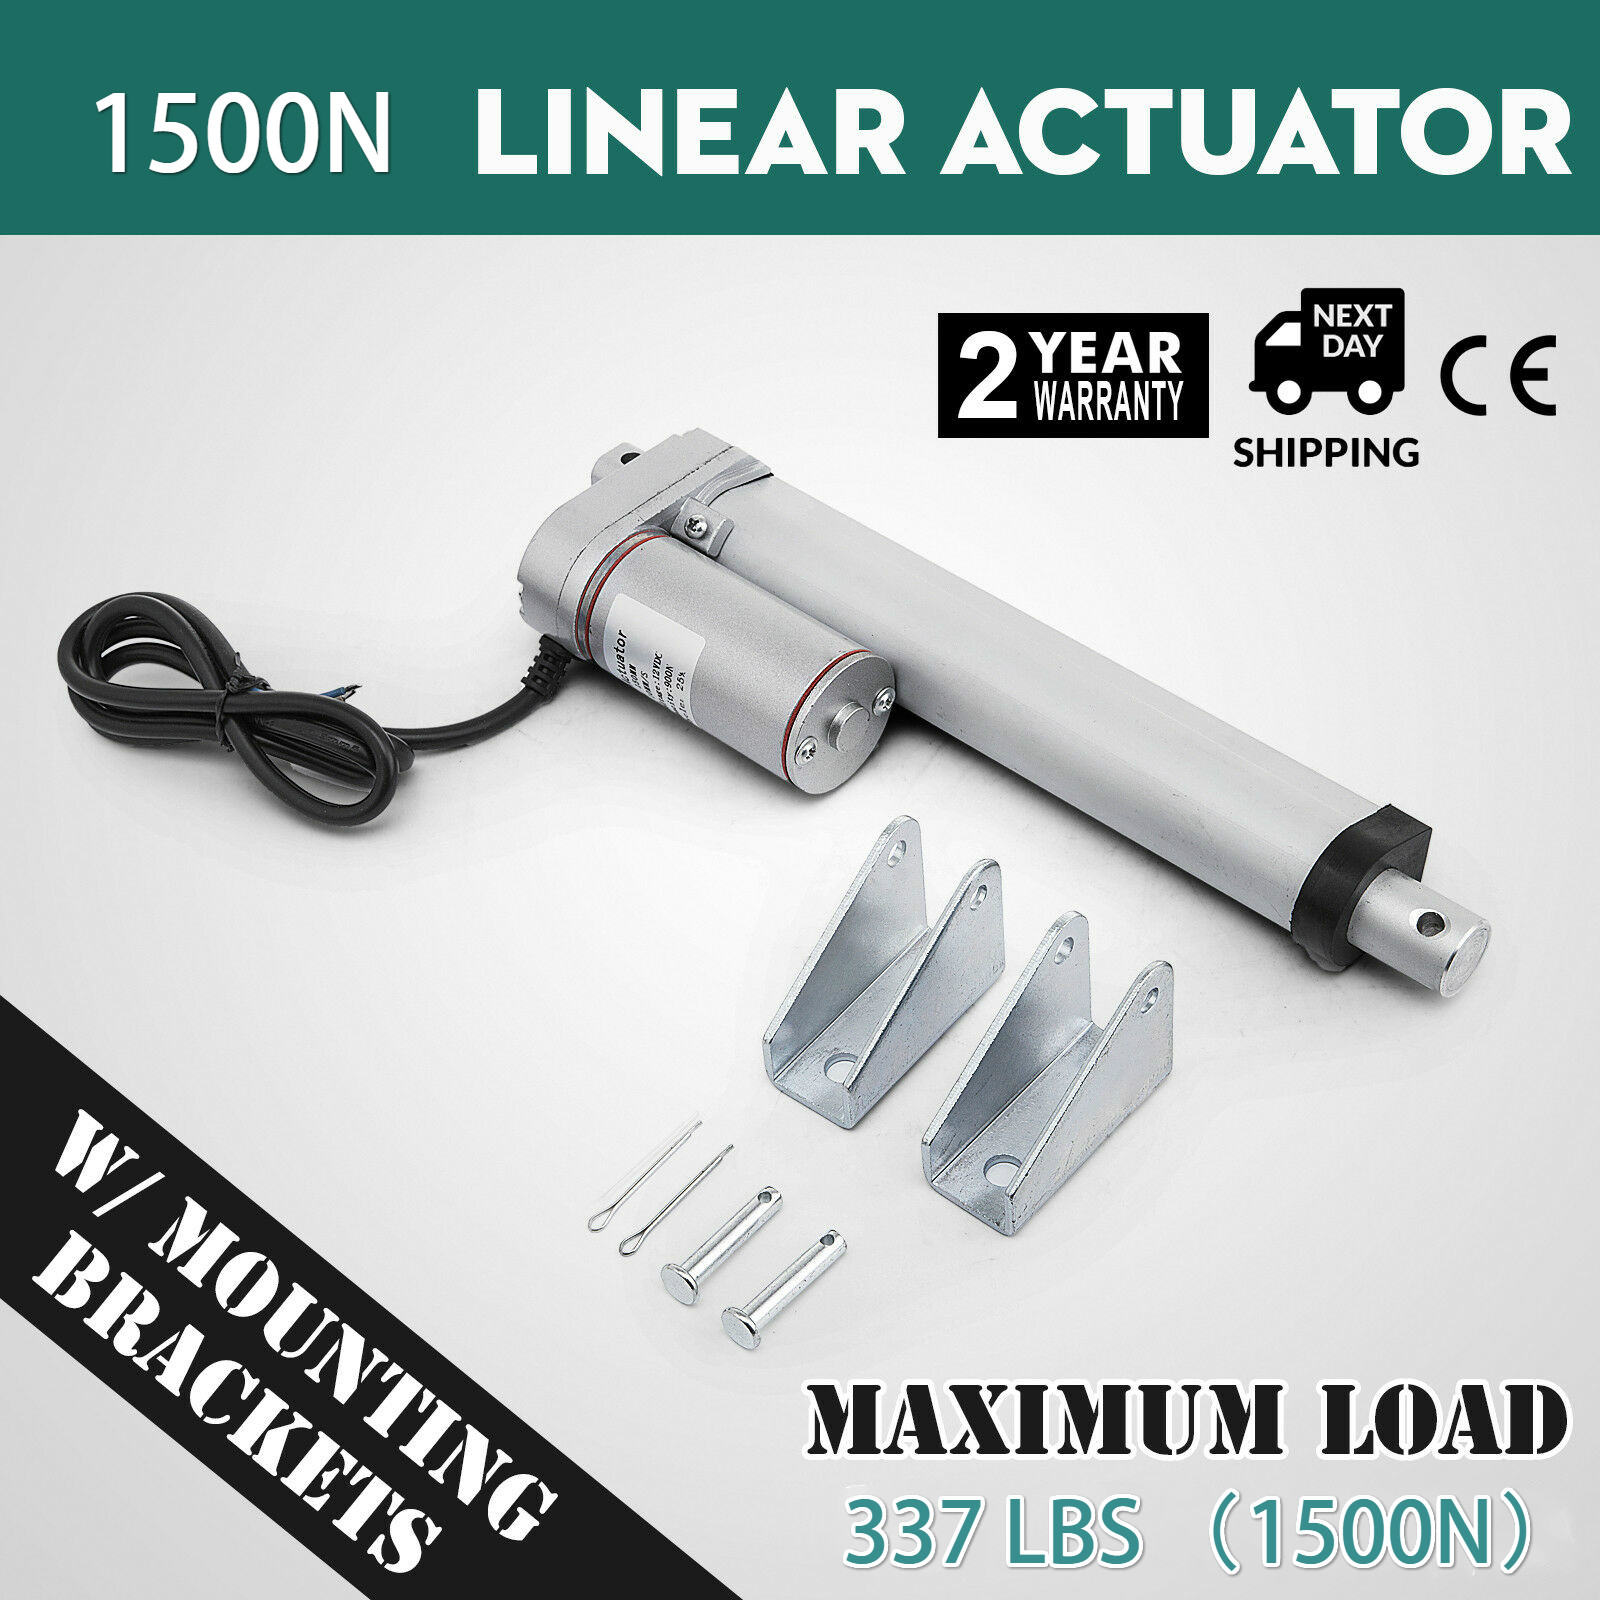 337Ibs 1500N 4-18 Inch  Electric Motor Linear Actuator DC 12V 10mm/s For Lectric Self Unicycle Scooter Input Voltage Range